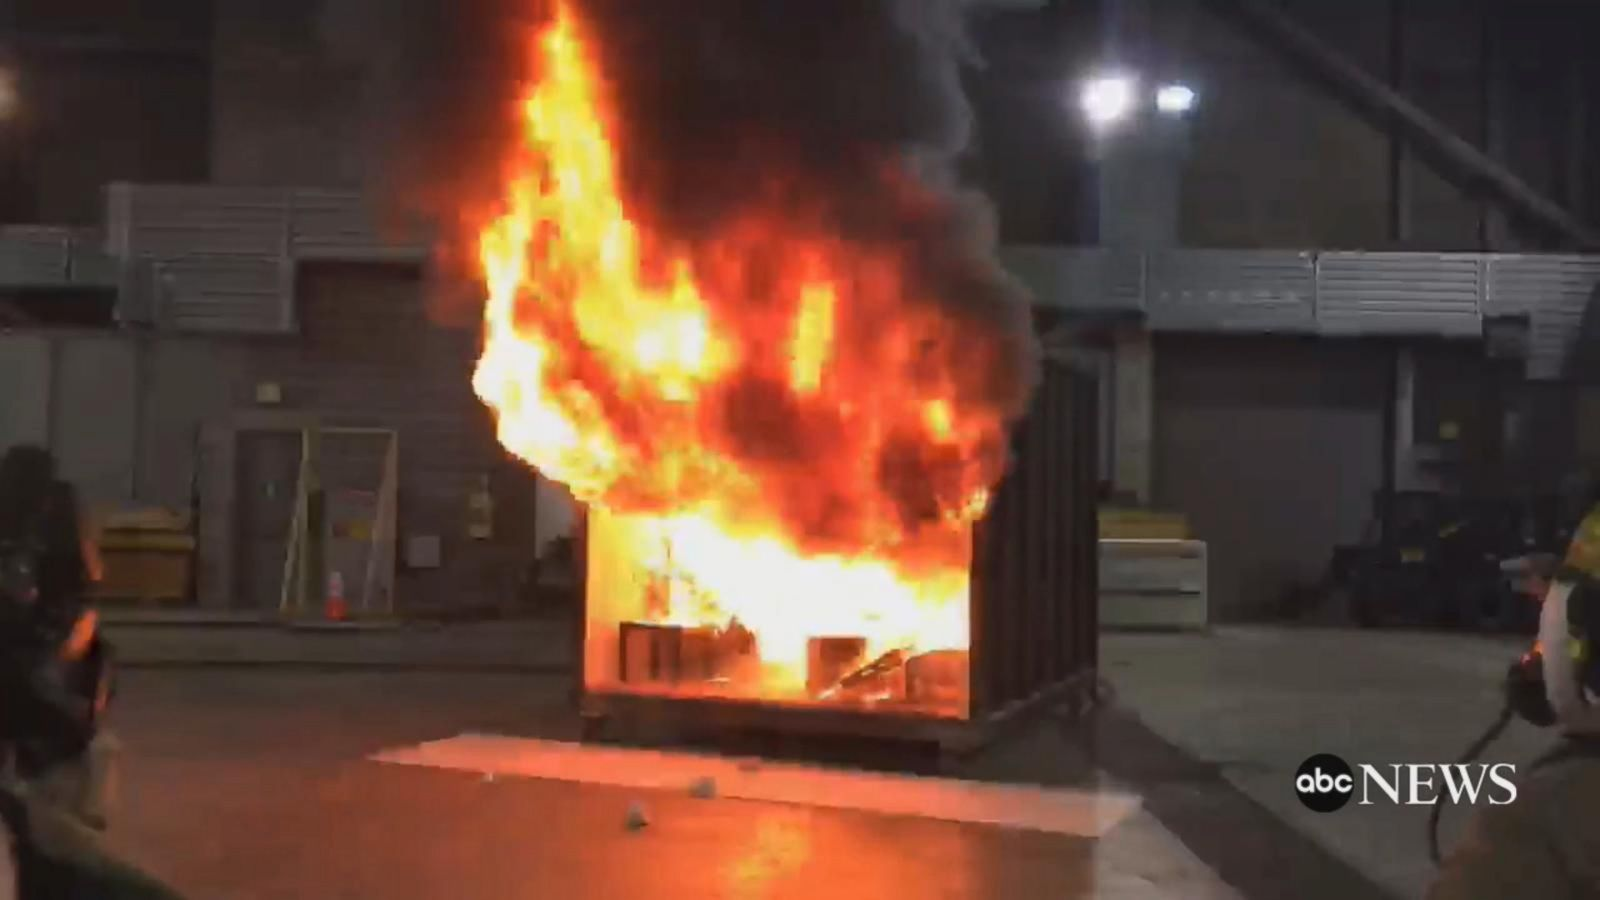 VIDEO: Watch How Quickly a Small Fire Engulfs a Whole Room